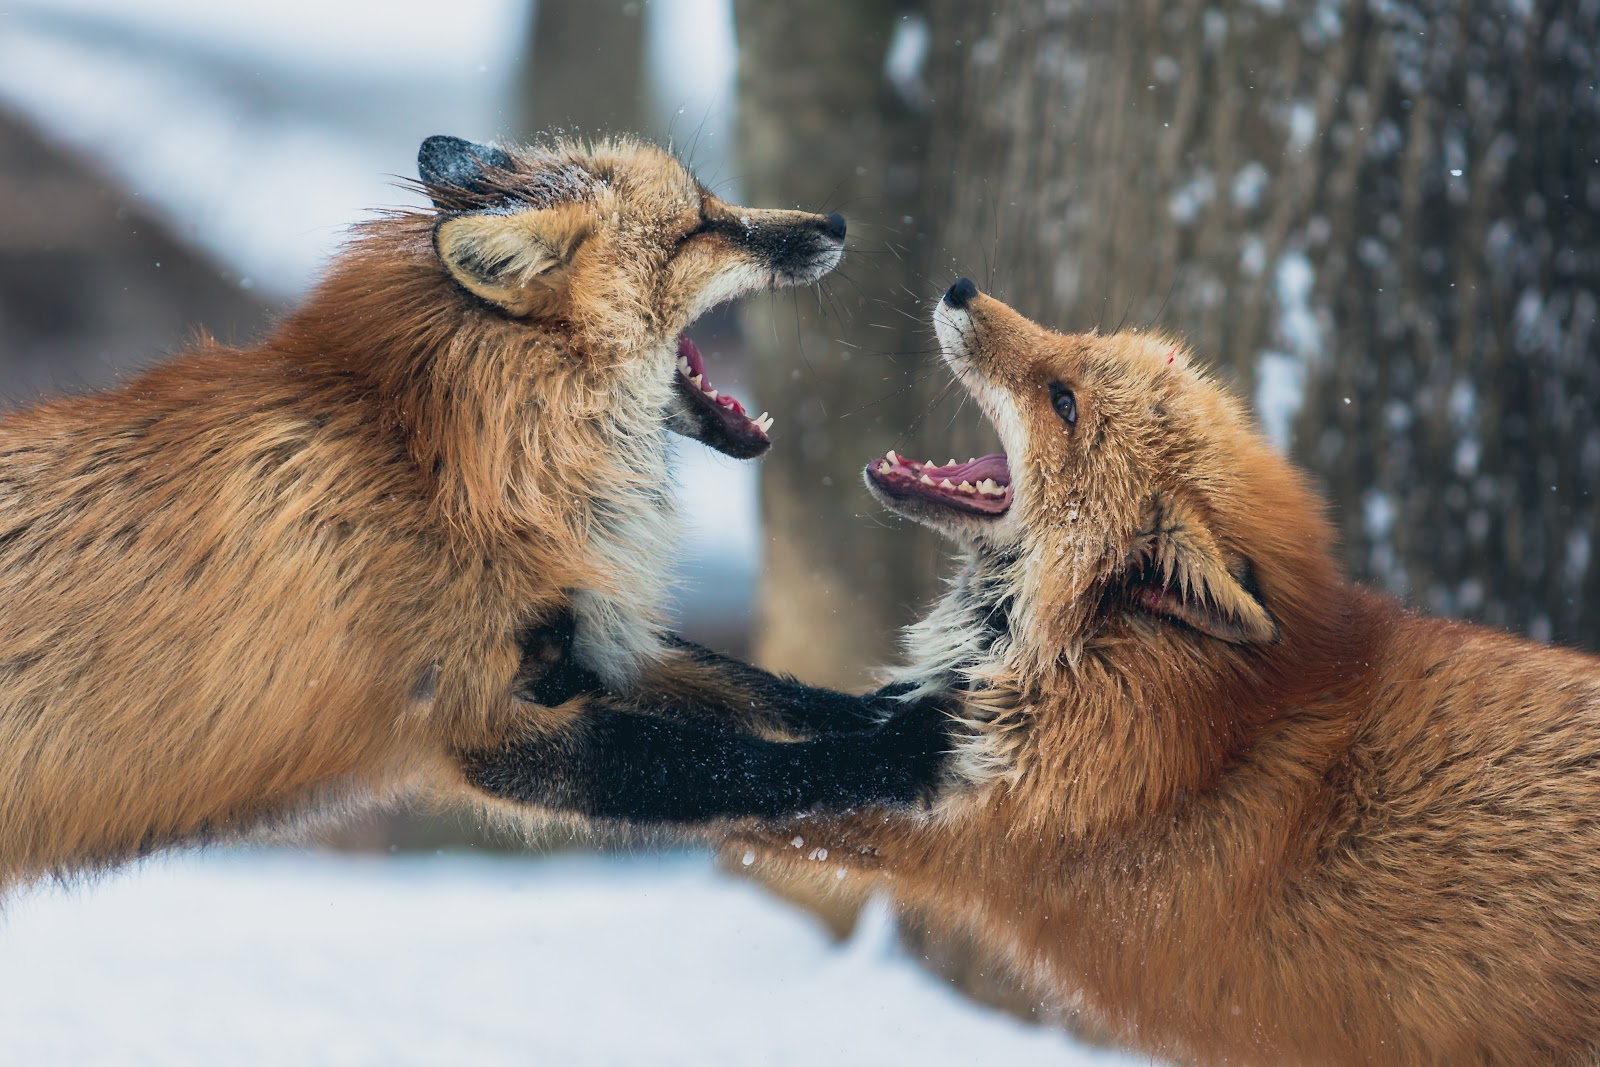 Two red foxes fighting in the snow with trees in the background that are out of focus